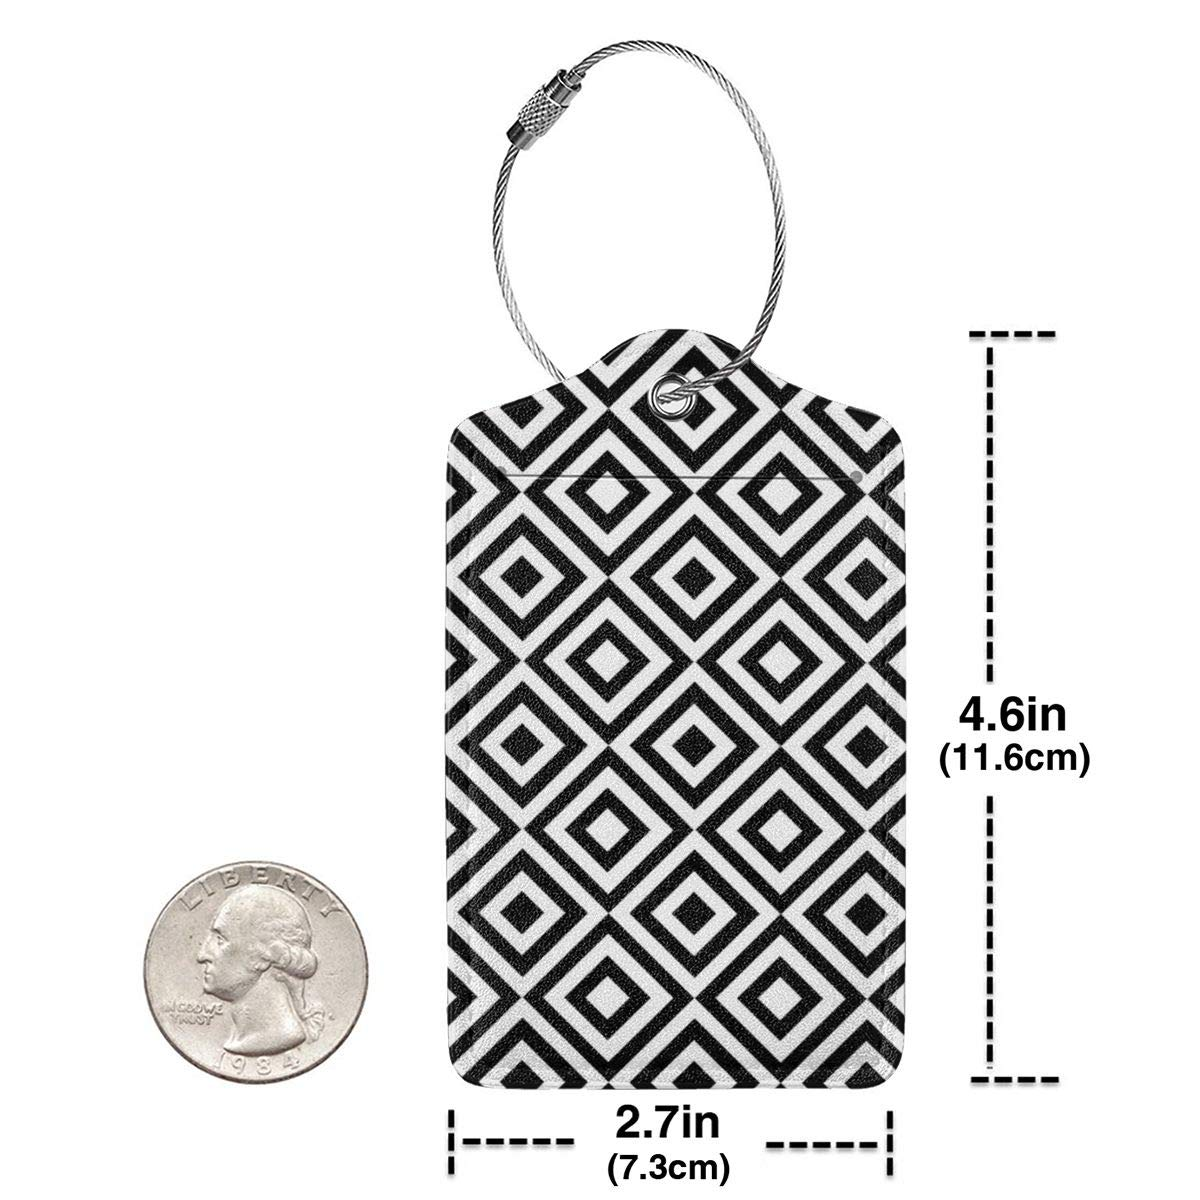 GoldK Geometric Black and White Squares Leather Luggage Tags Baggage Bag Instrument Tag Travel Labels Accessories with Privacy Cover